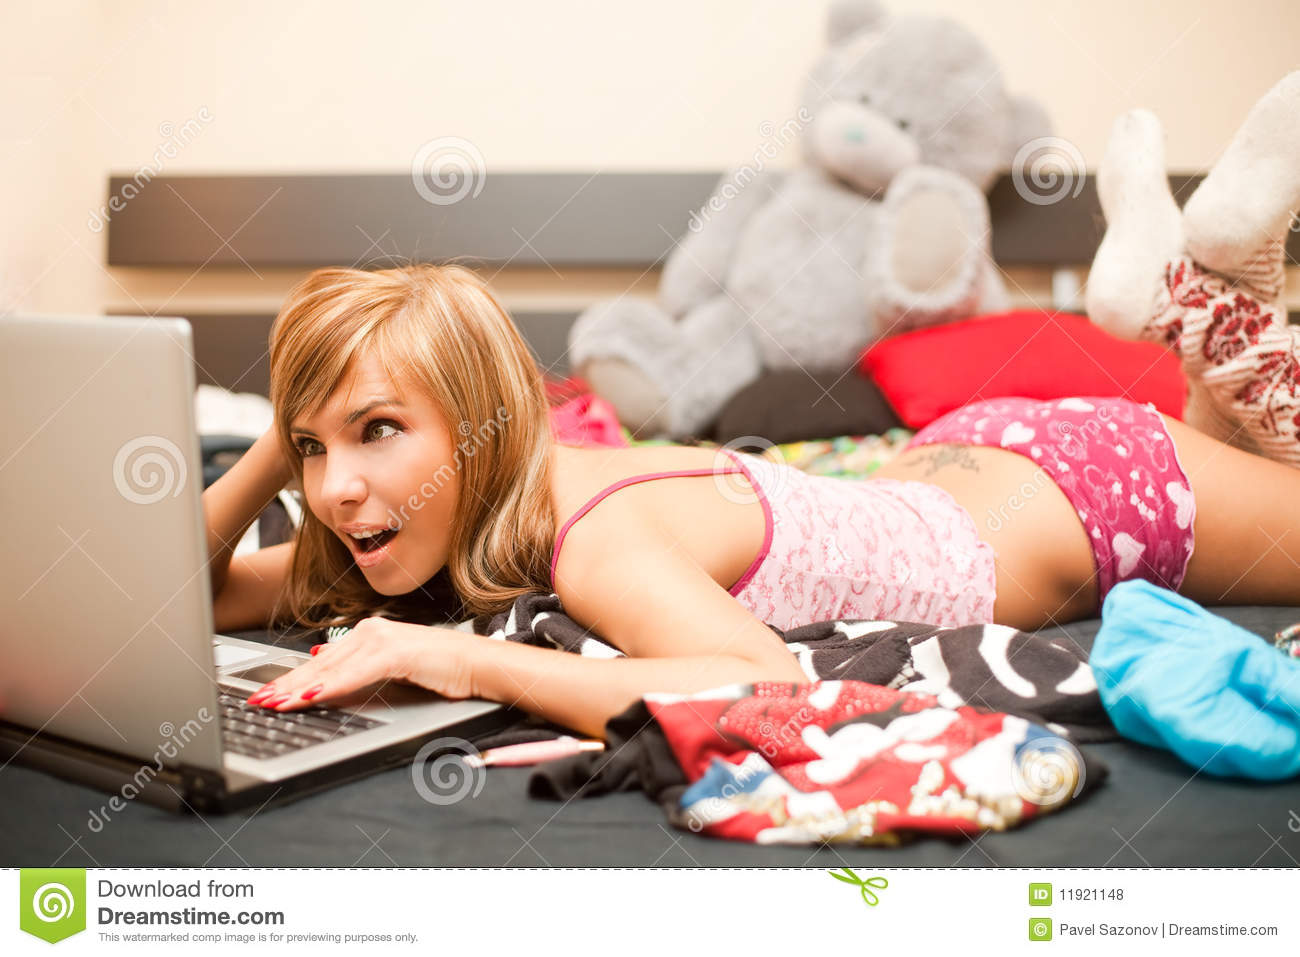 Teen Girl In Bed With Laptop Royalty Free Stock Photos